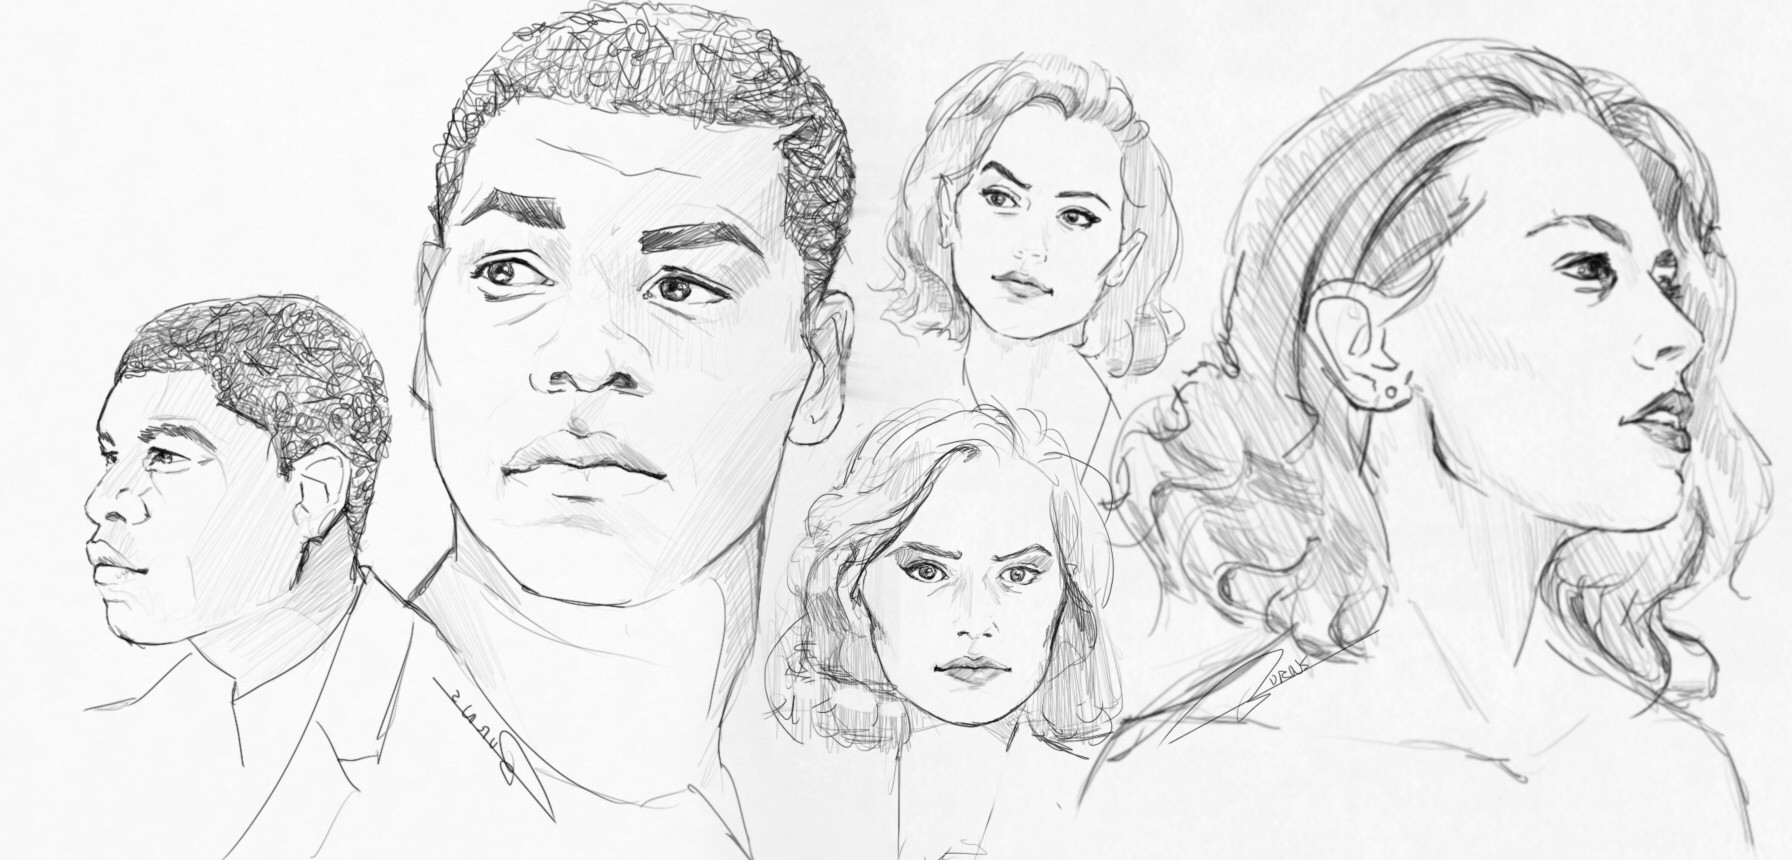 John Boyega and Daisy Ridley sketches